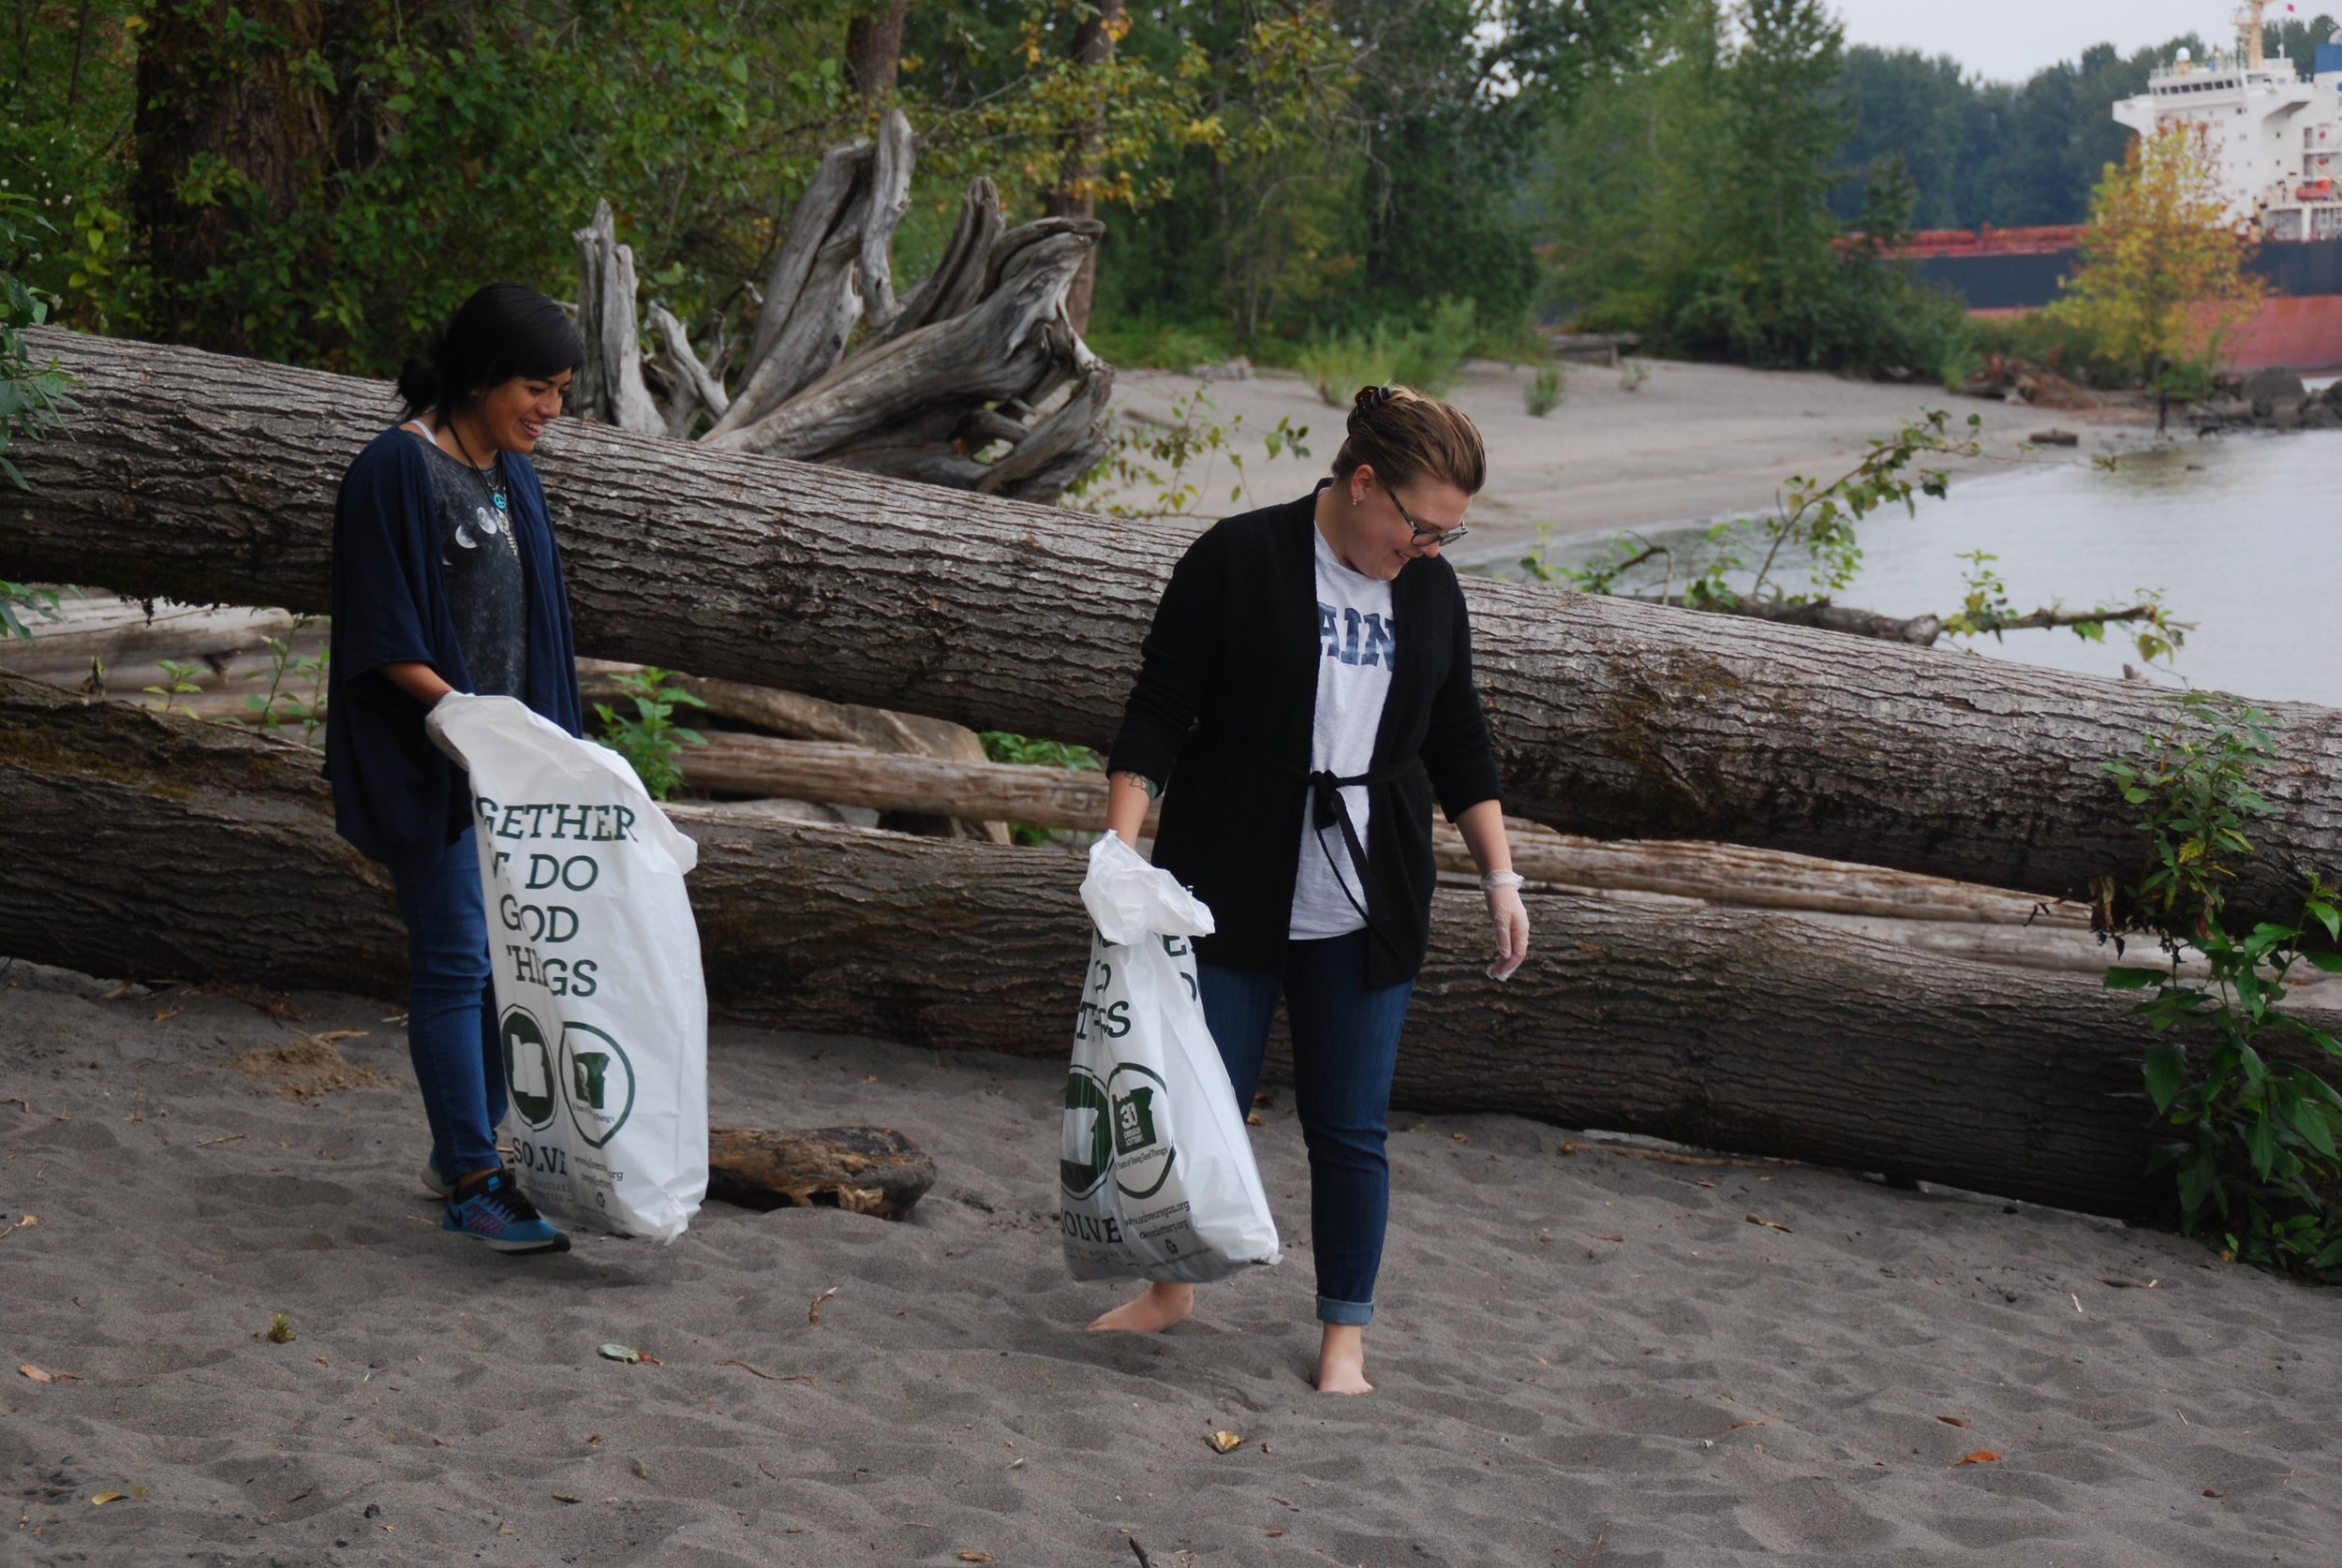 Fellows, Rina and Emma collecting litter along the shore